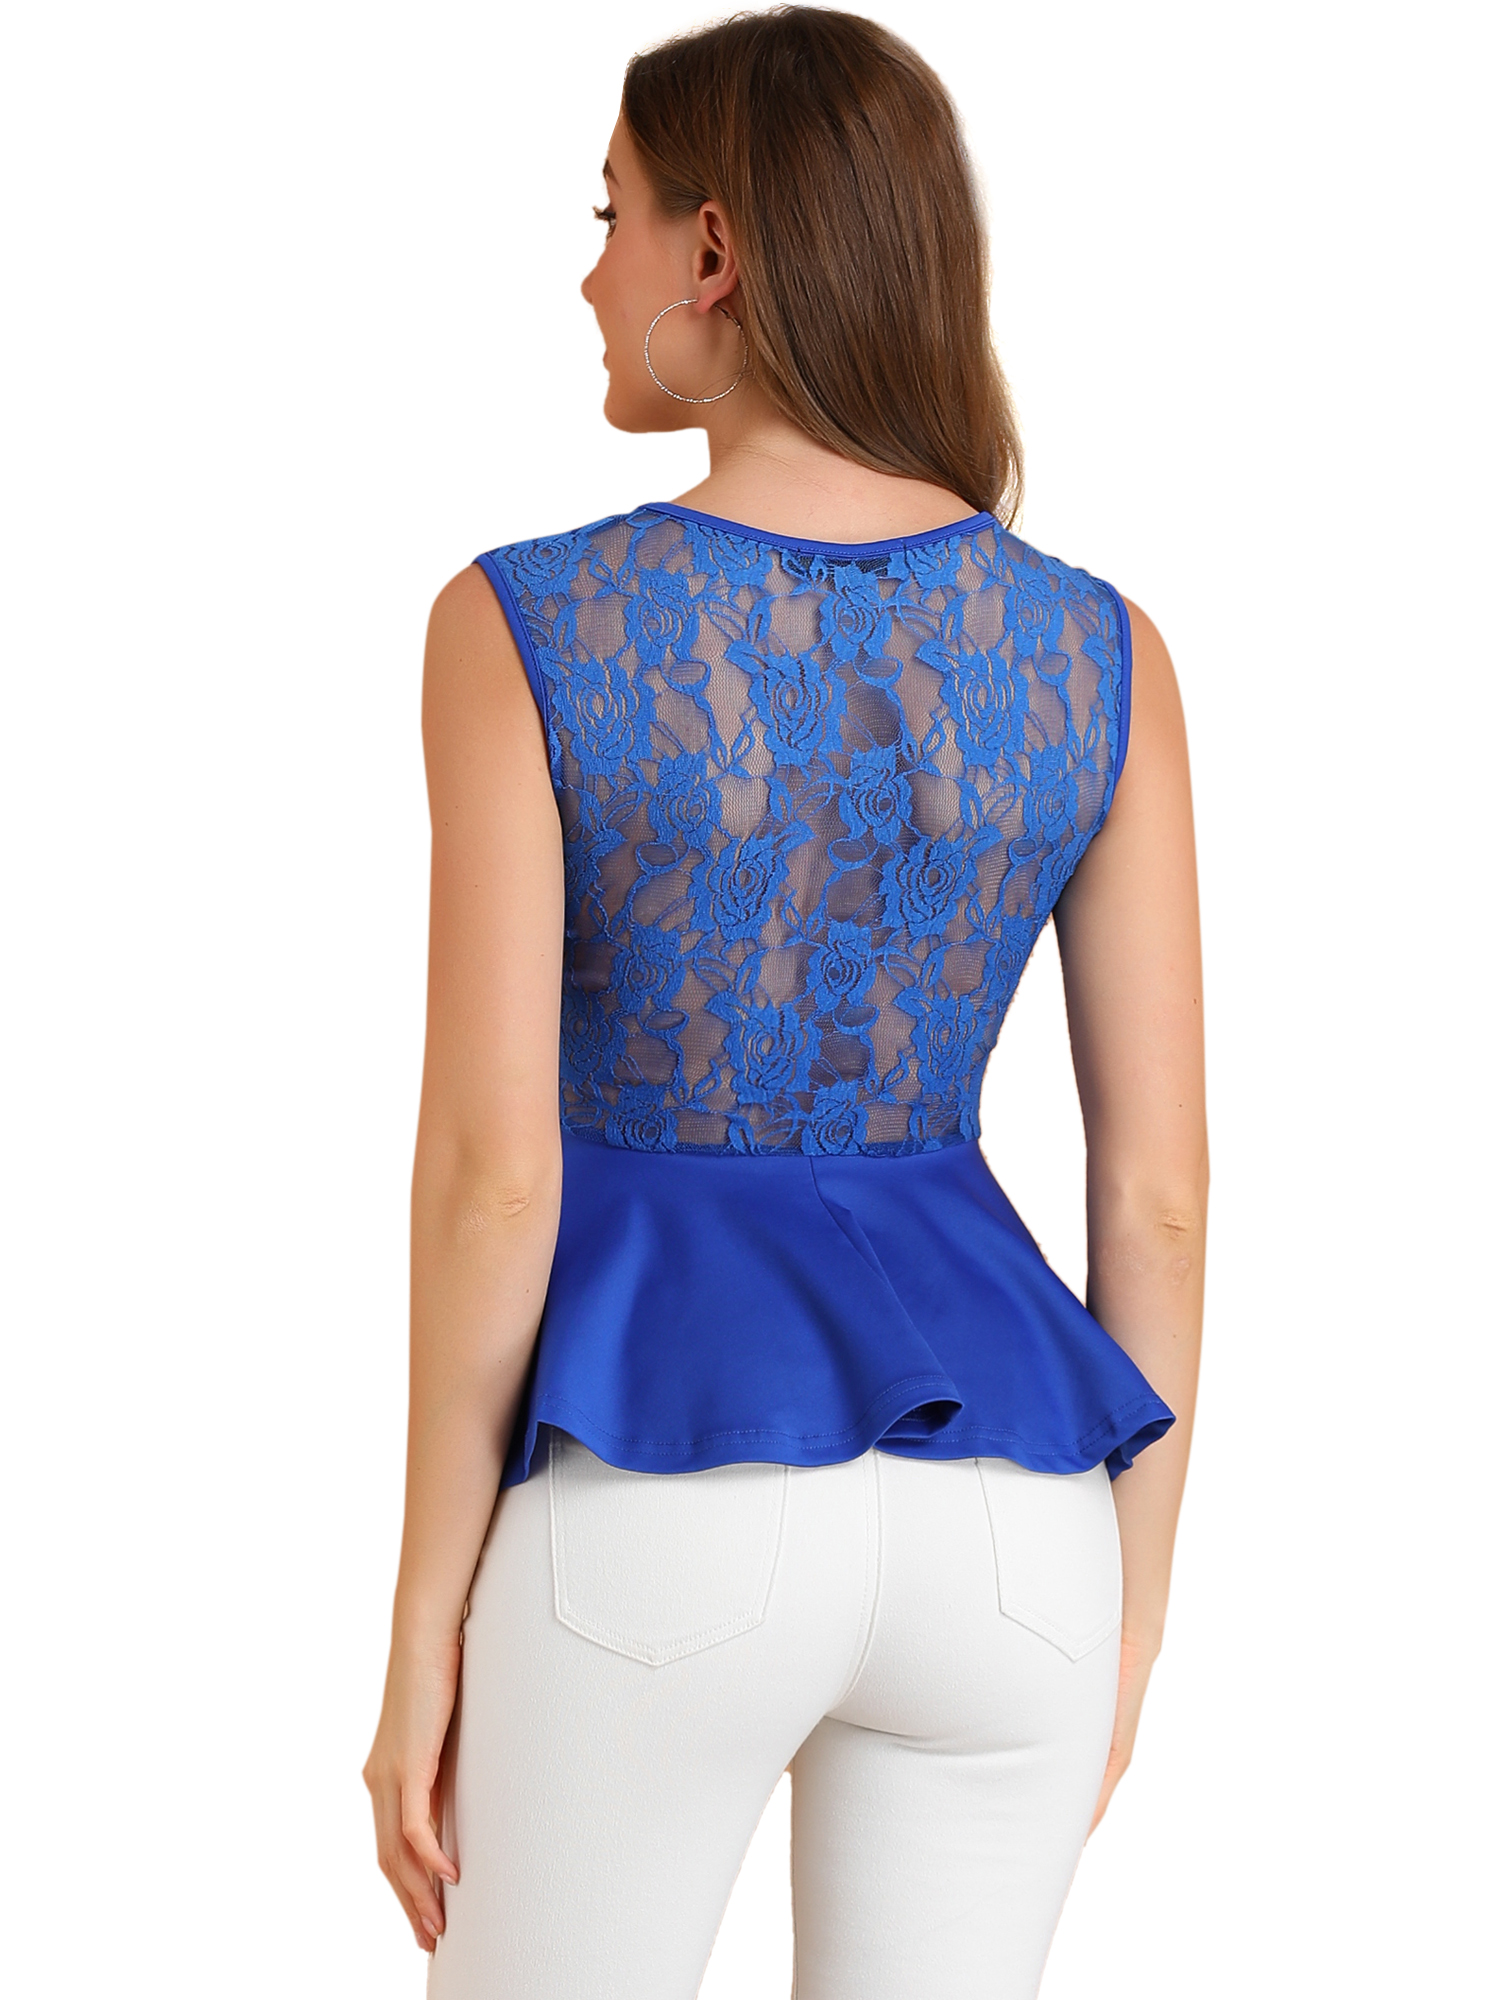 Women Round Neck Lace-Paneled Sleeveless Peplum Top Blue M